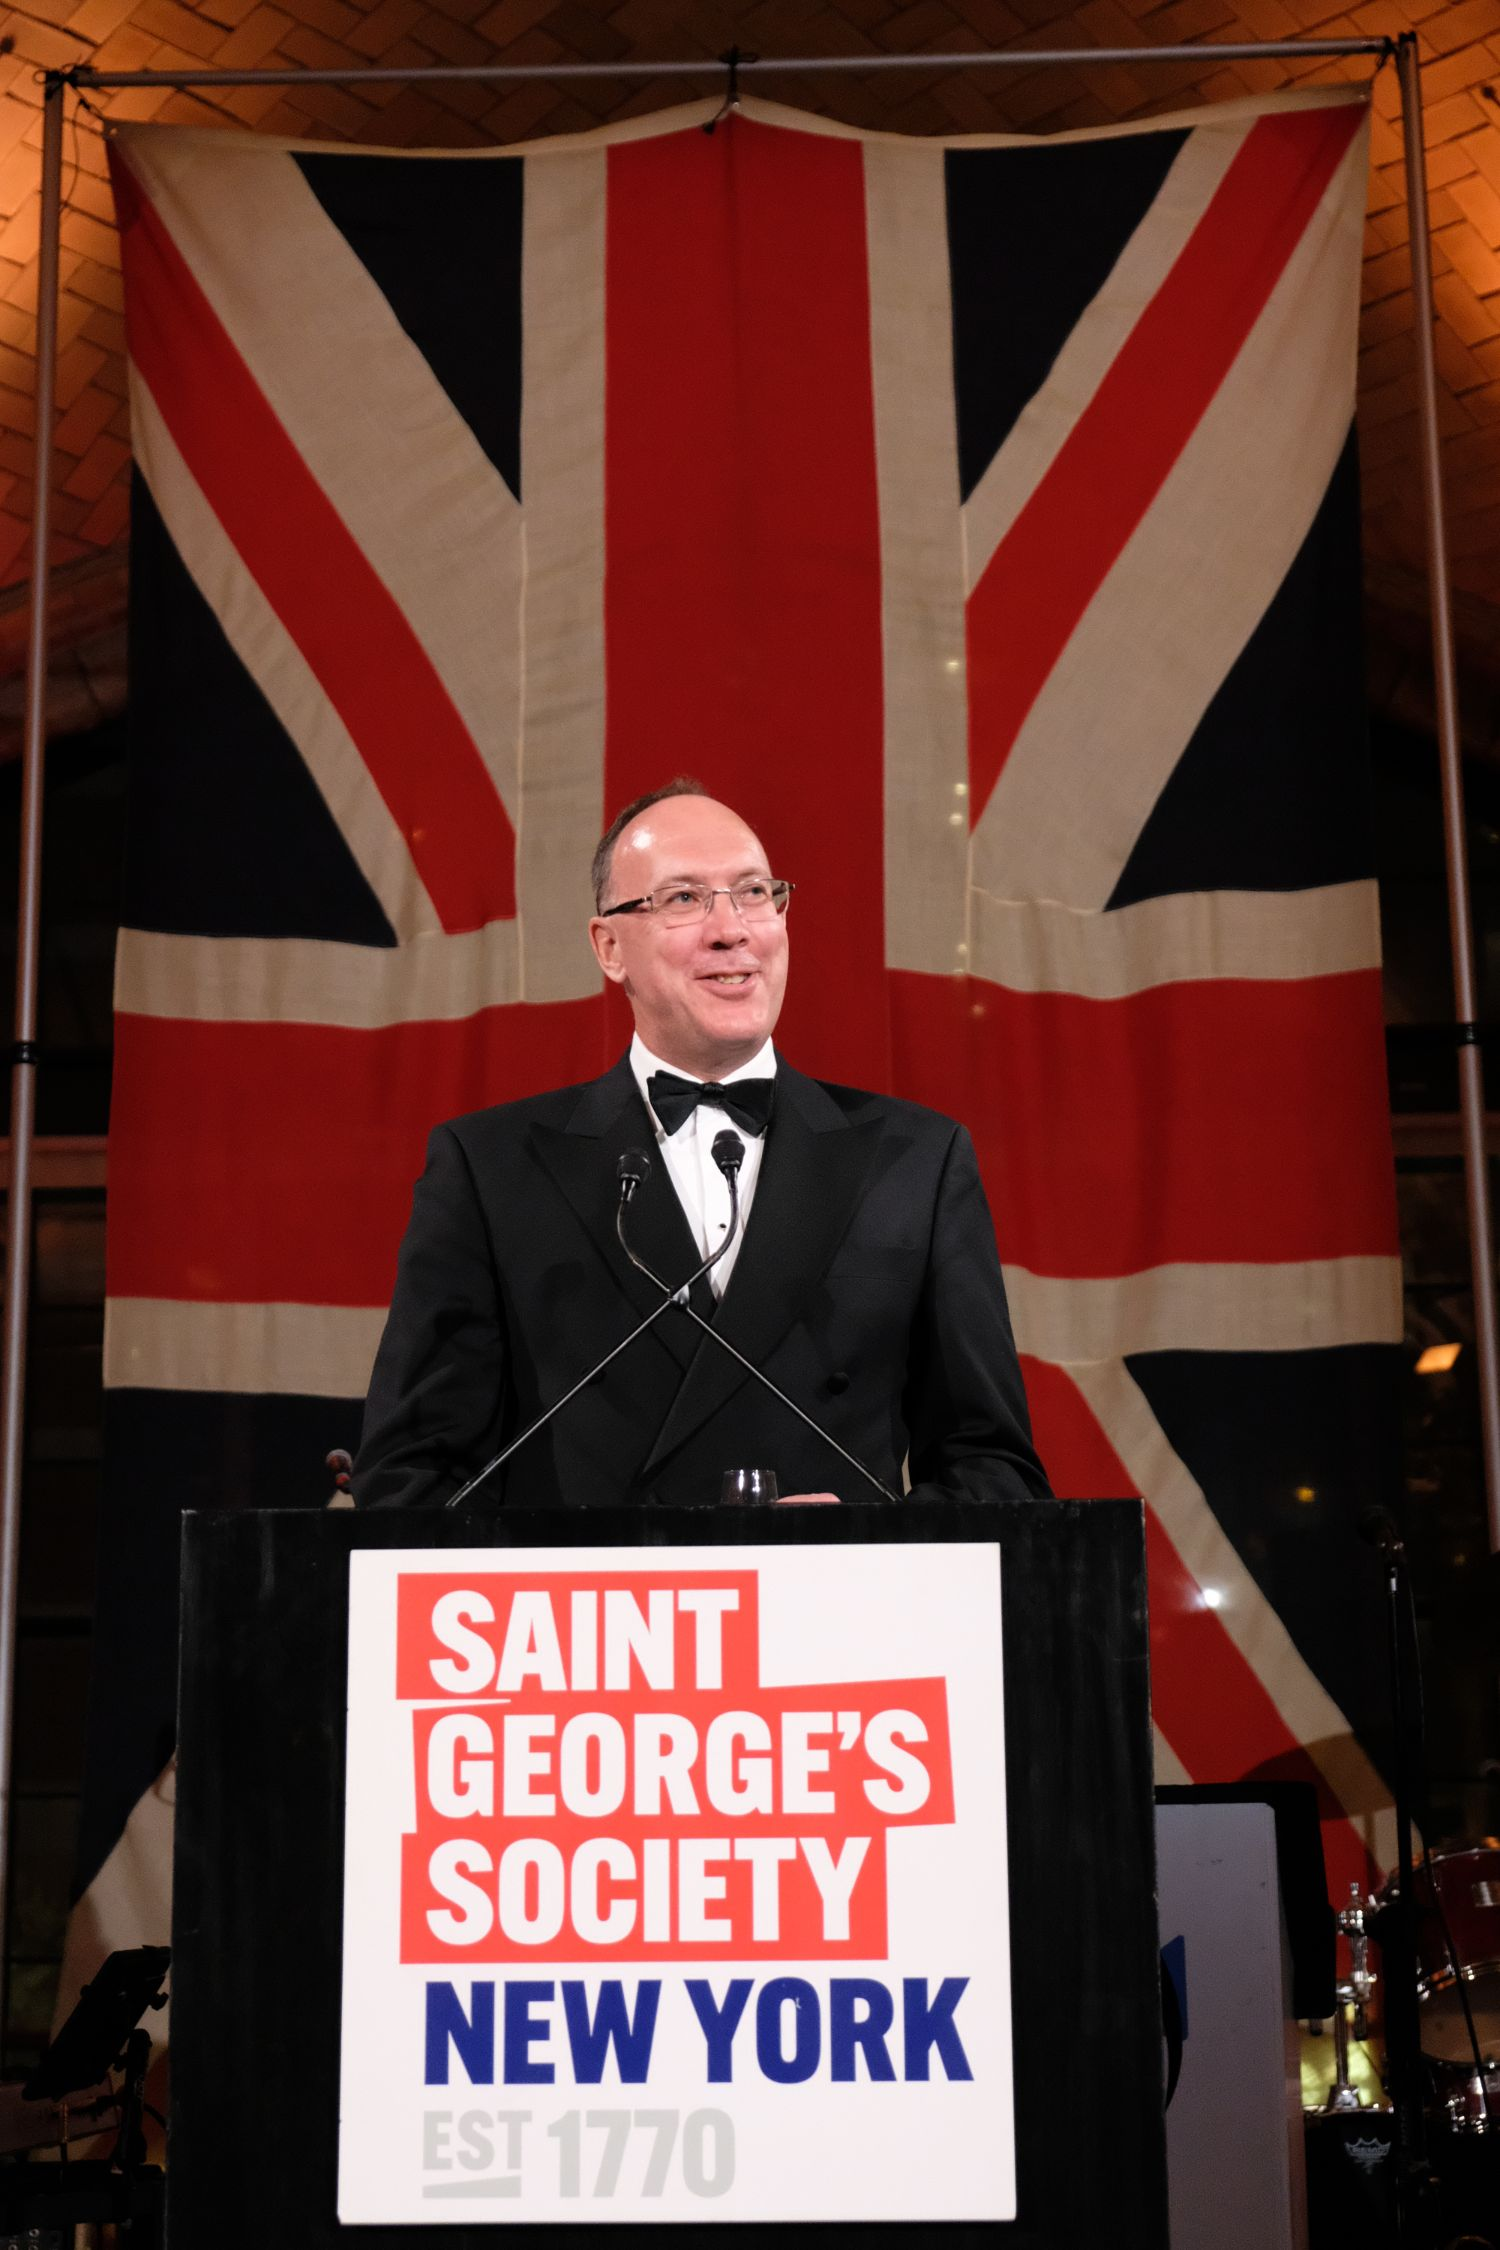 Antony Phillipson, Her Majesty's Consul General in New York